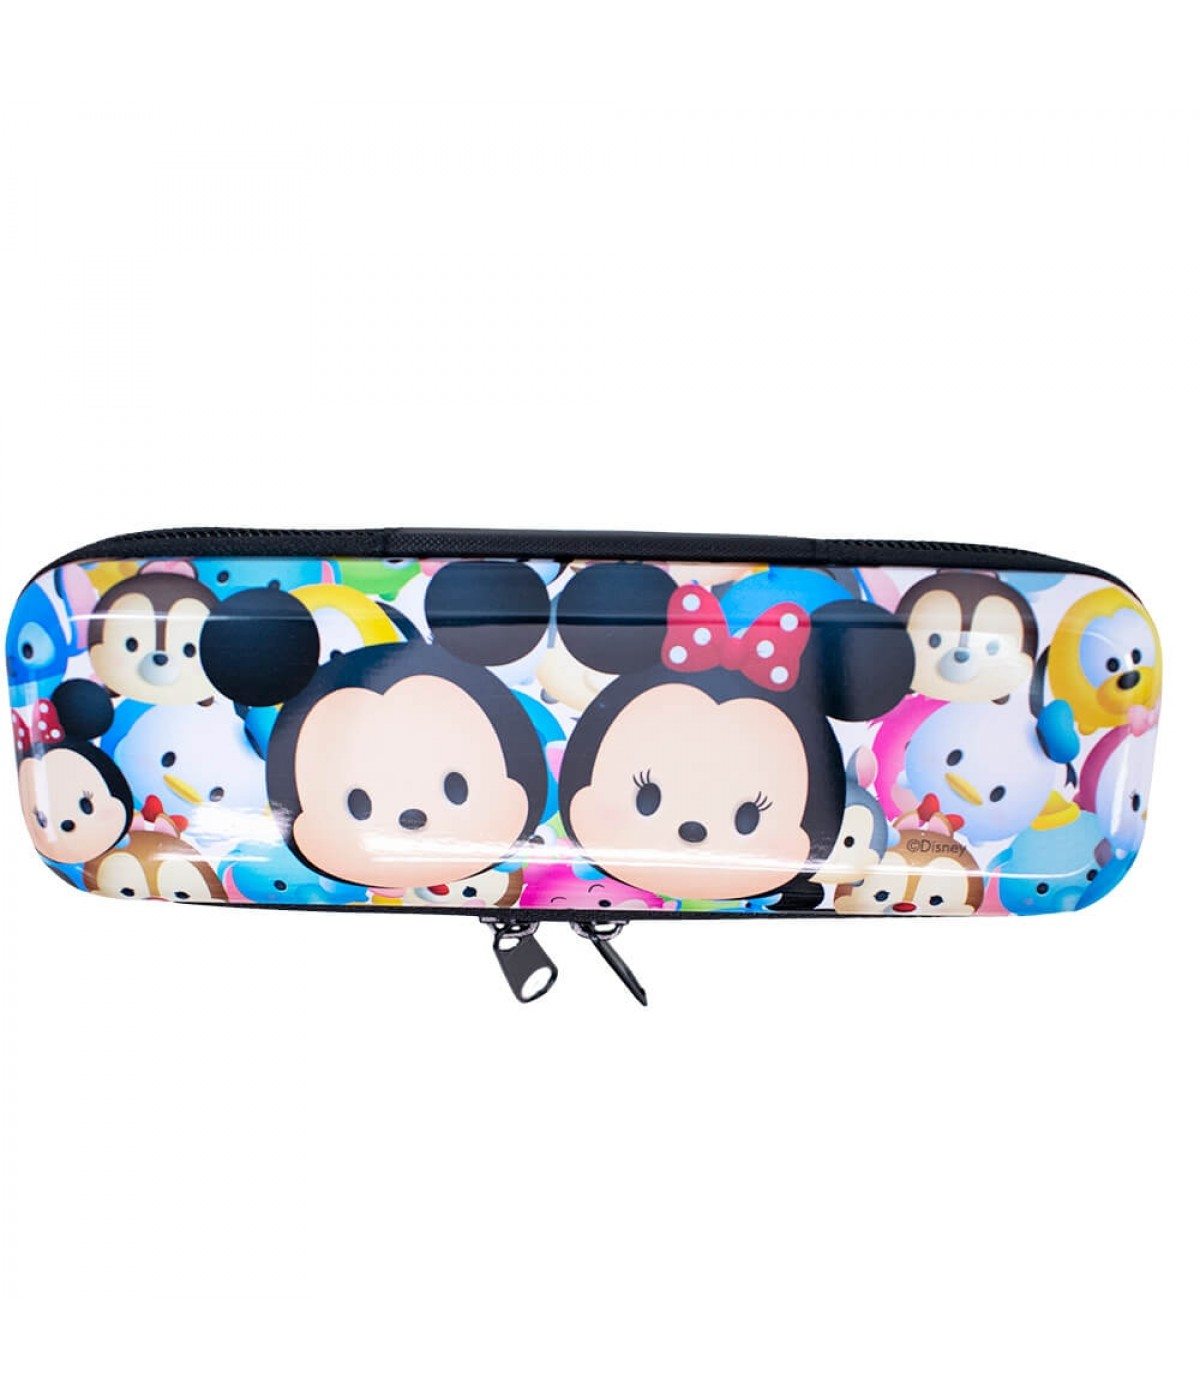 Estojo Metal Branco Mickey Minnie Tsum Tsum 6x3.5x19cm - Disney